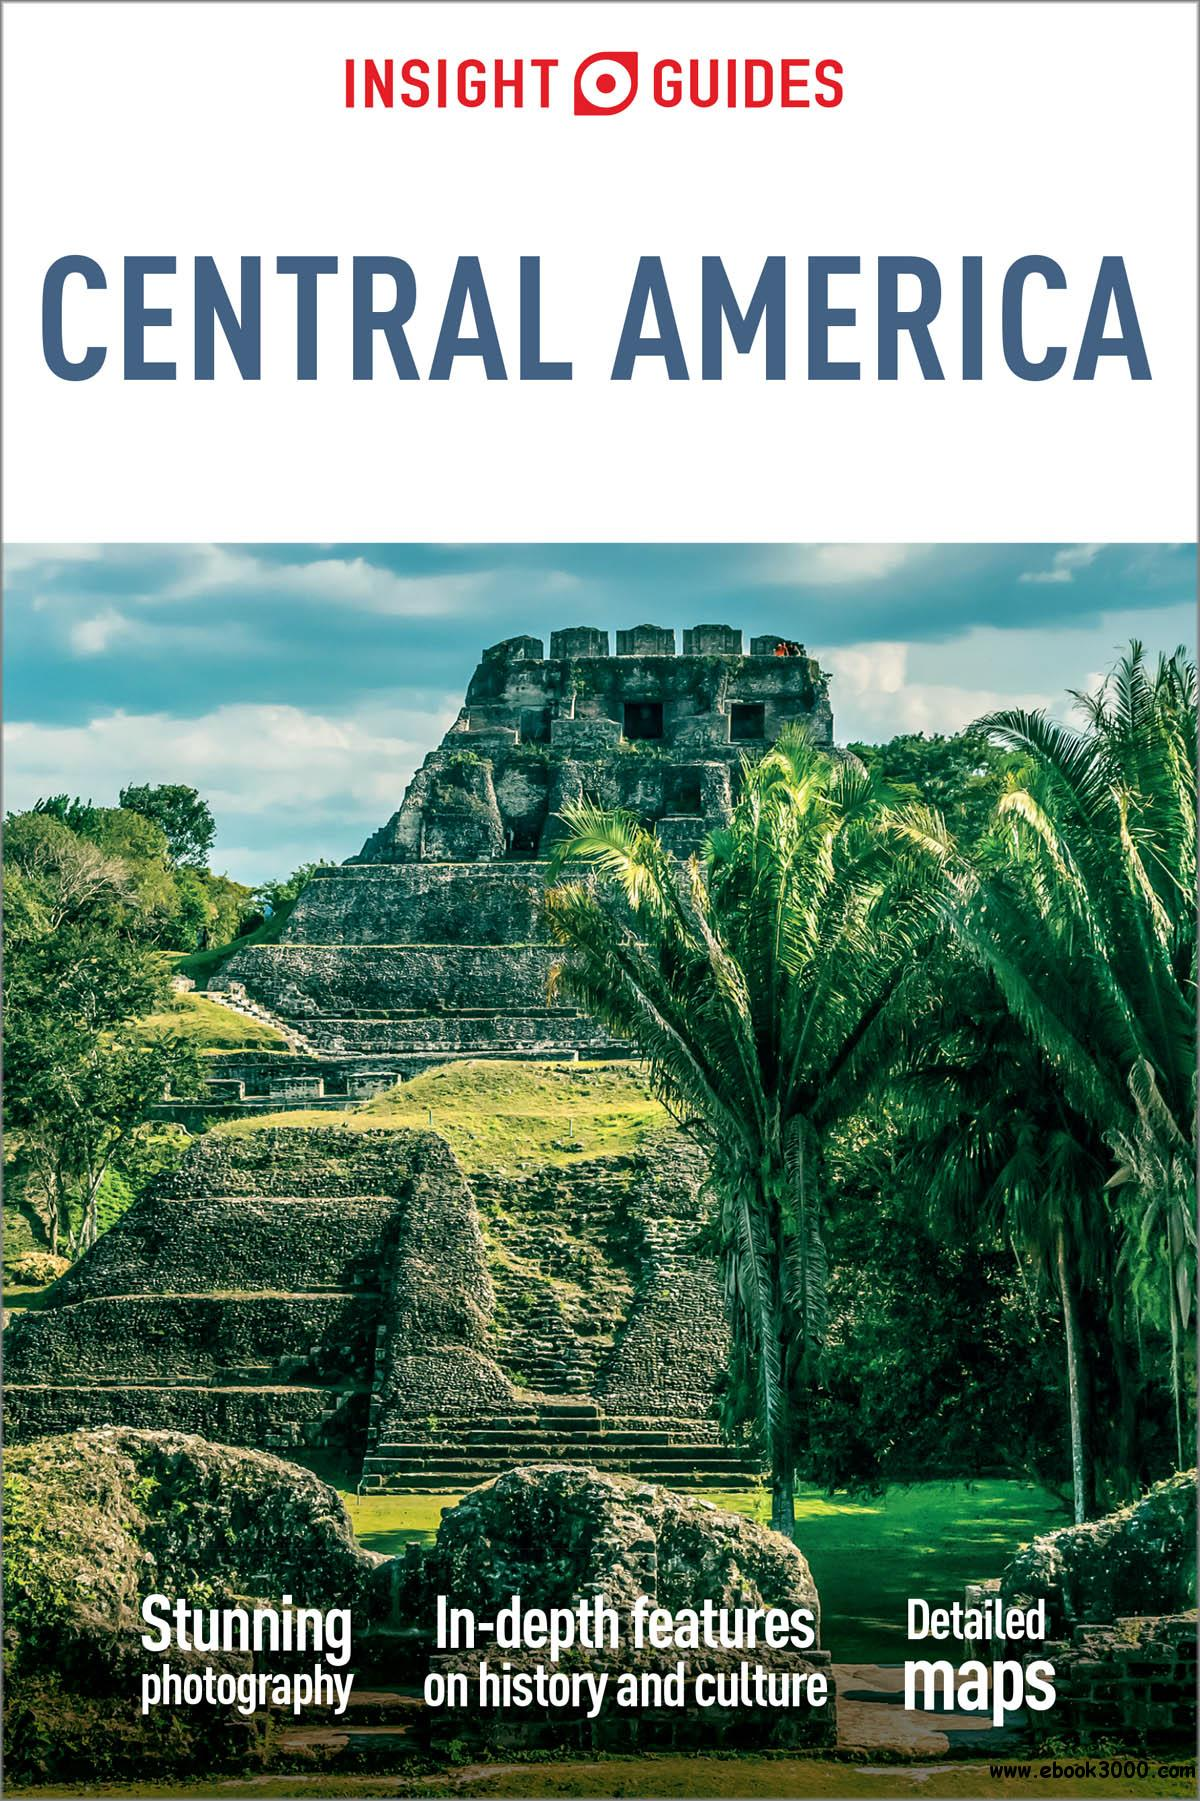 Insight Guides Central America